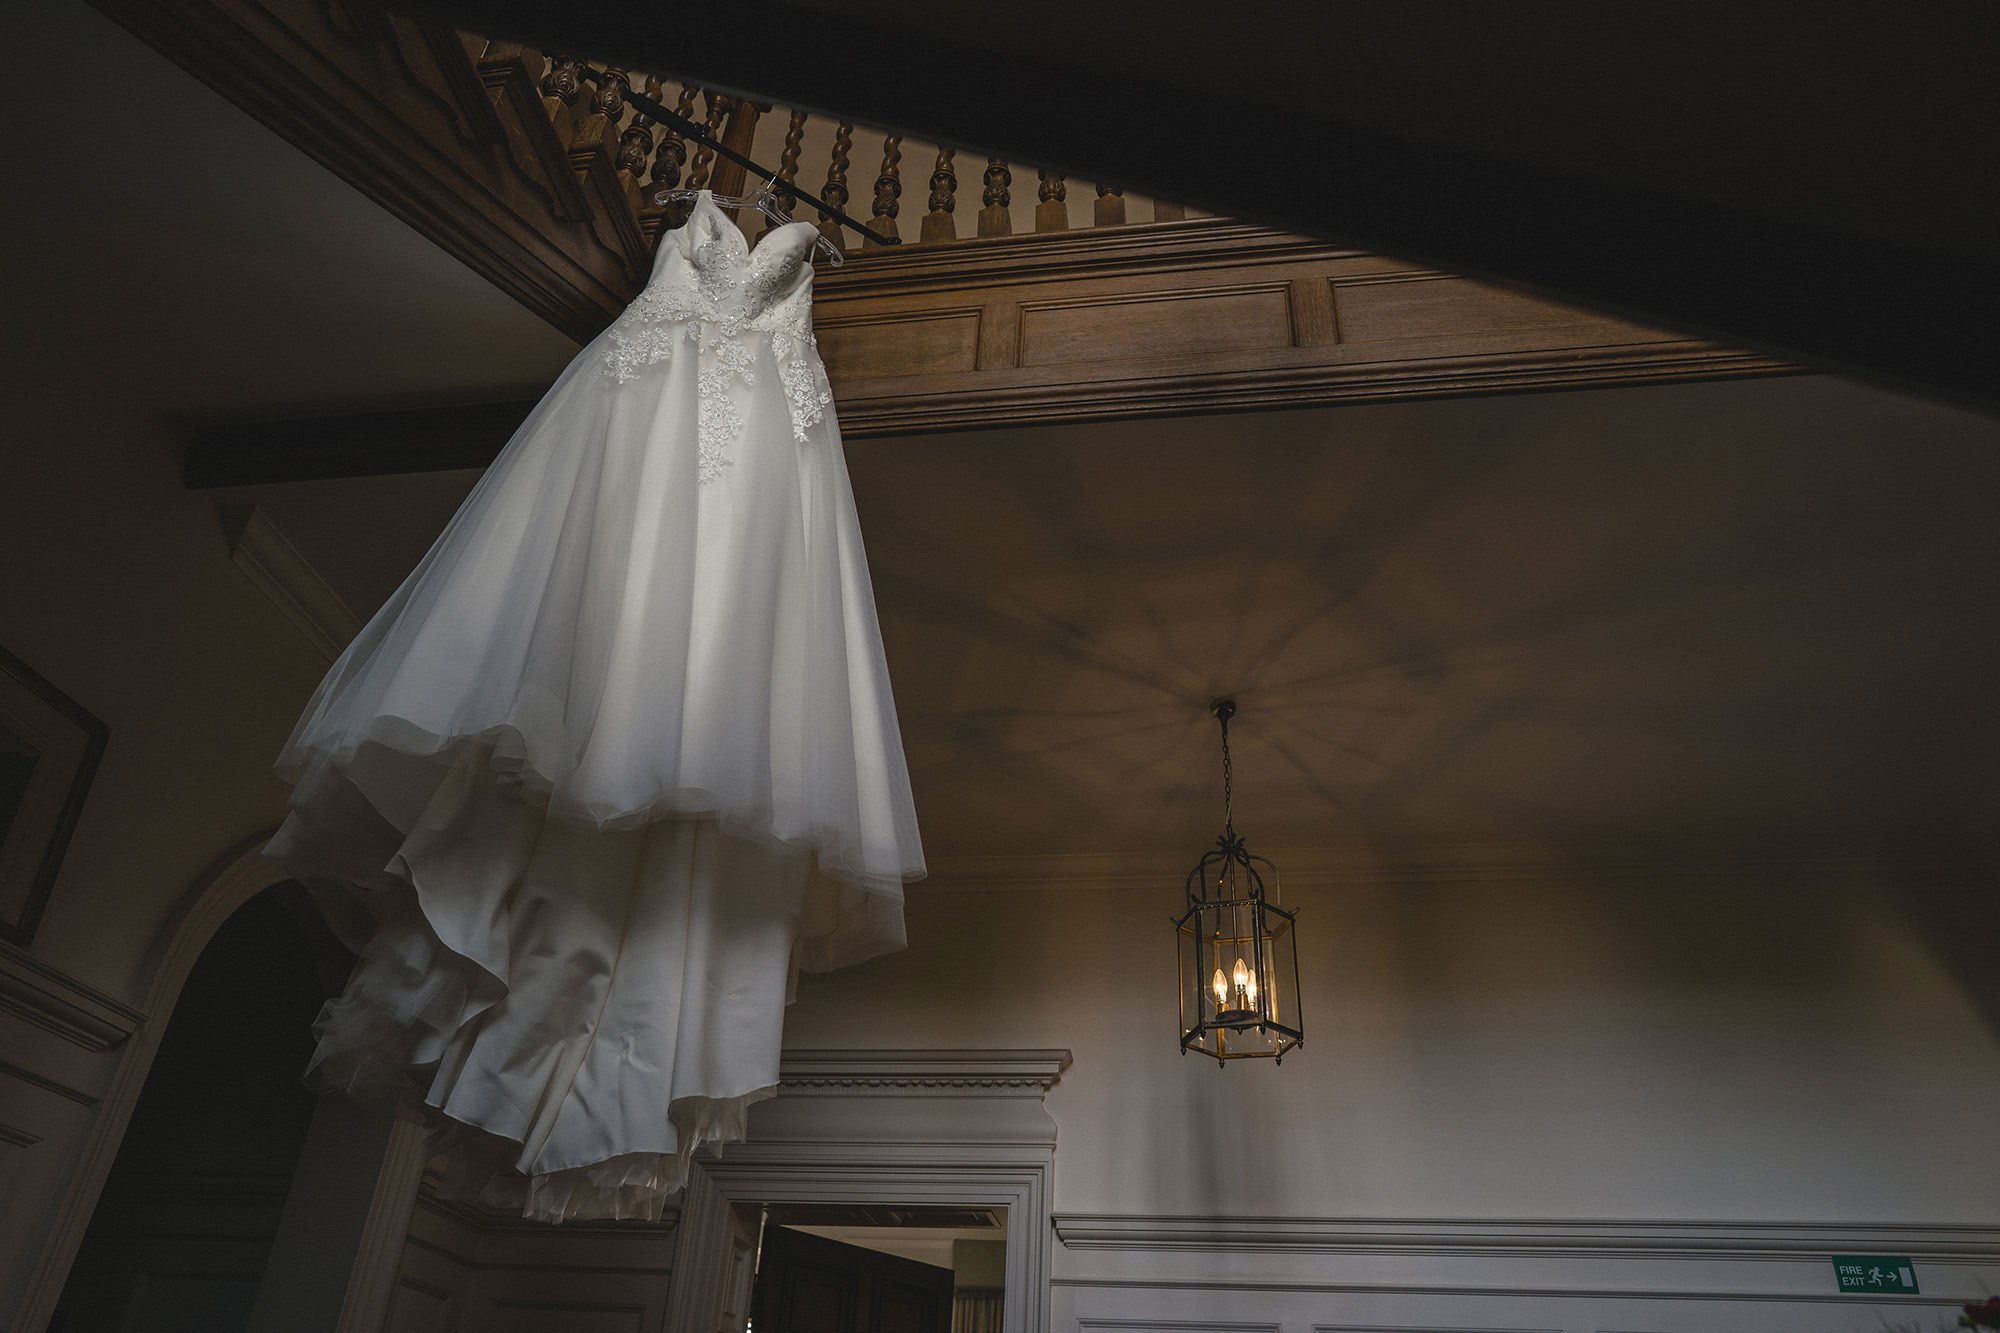 brides wedding dress hung up